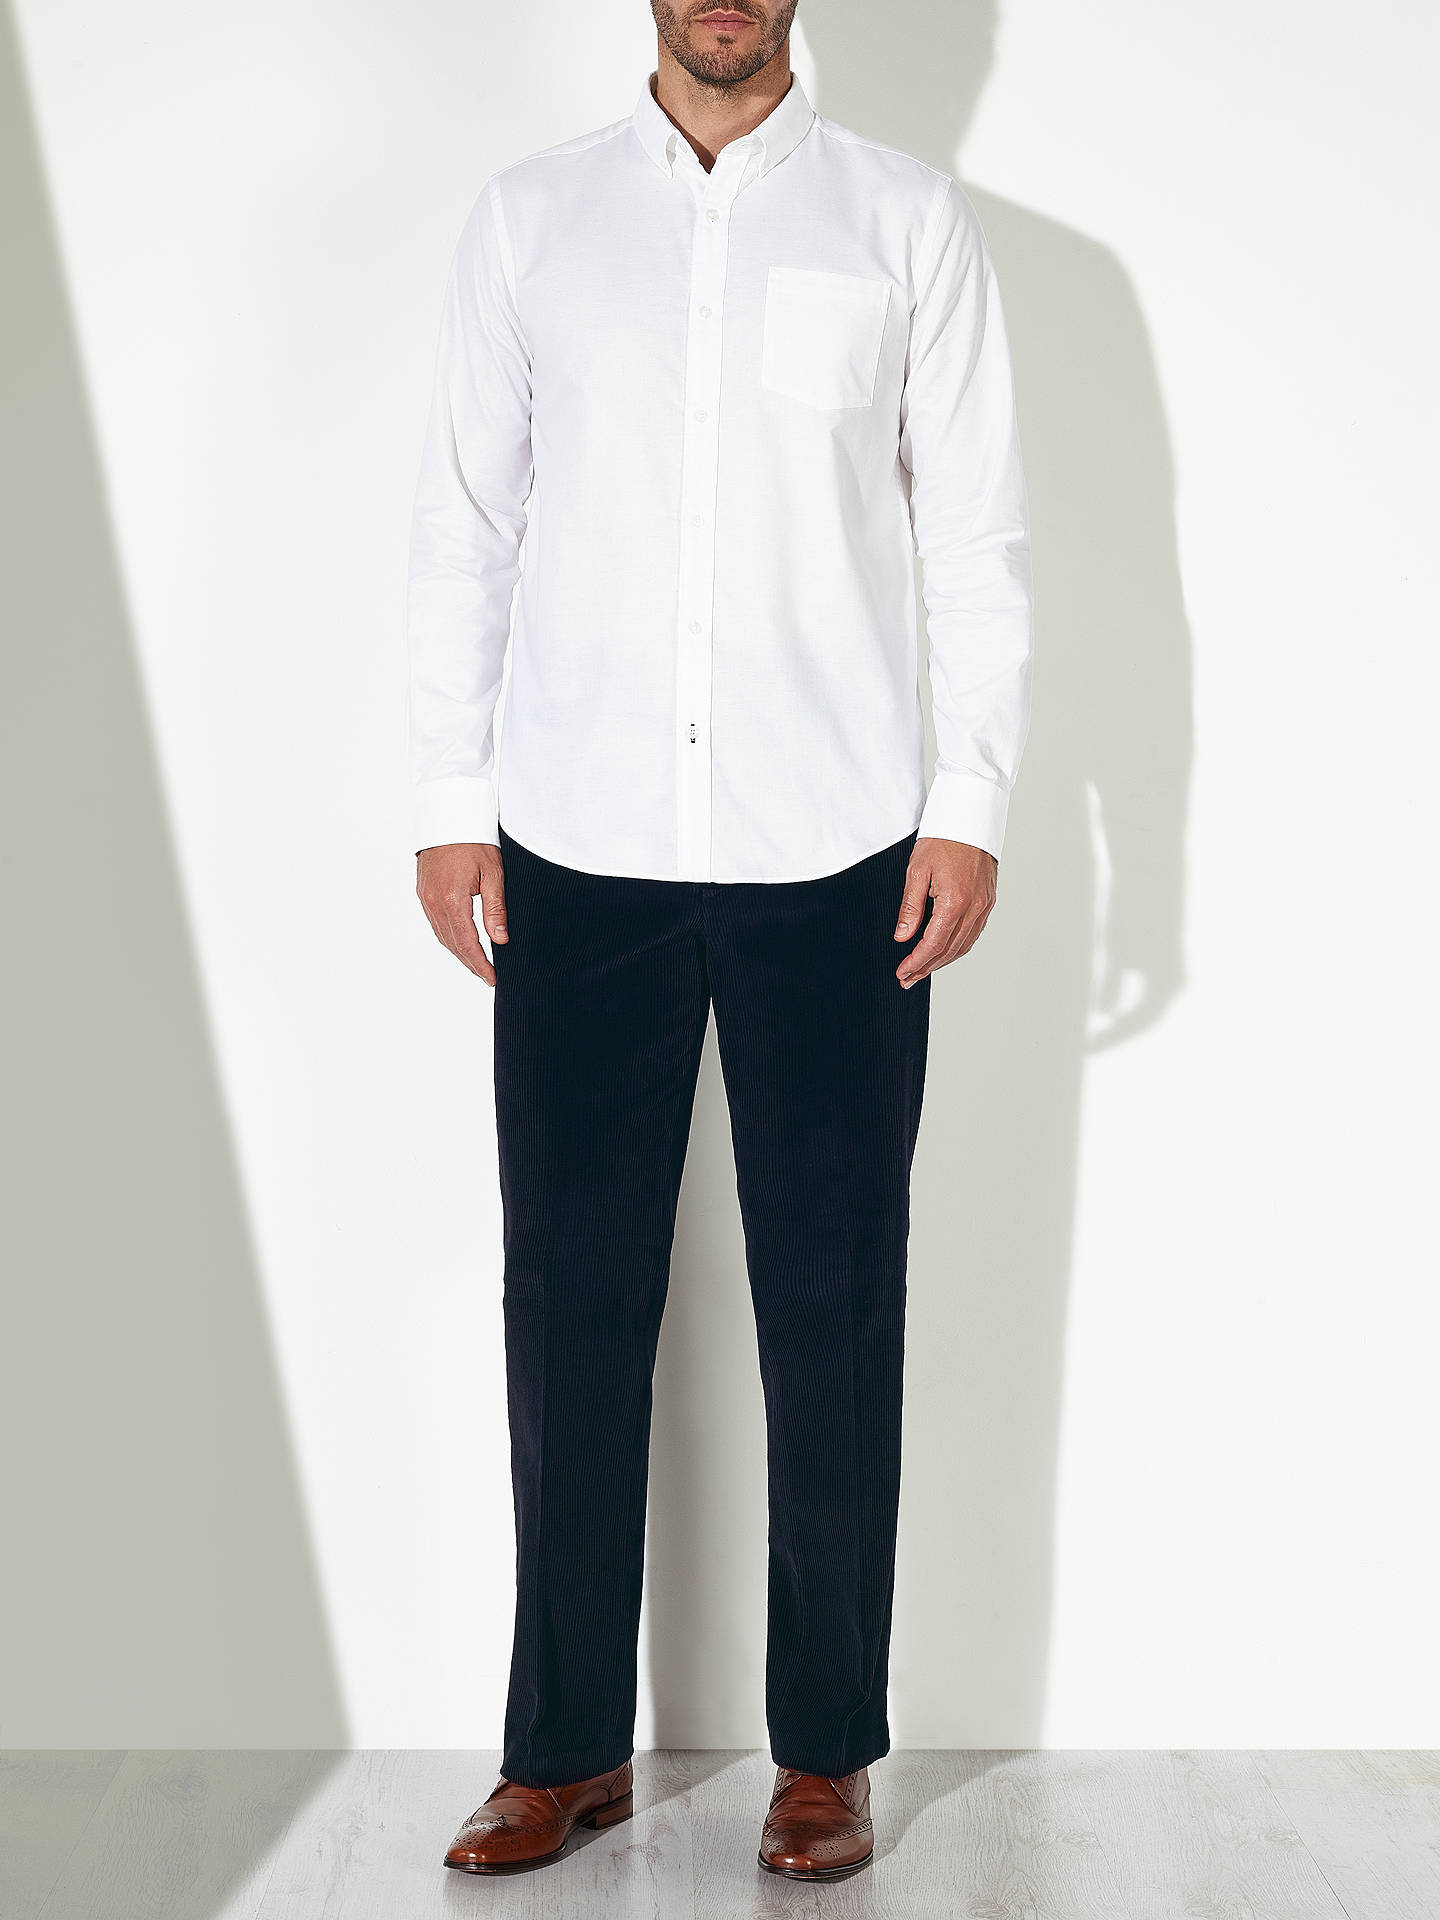 Buy John Lewis Laundered Cotton Corduroy Trousers, Dark Navy, 30R Online at johnlewis.com